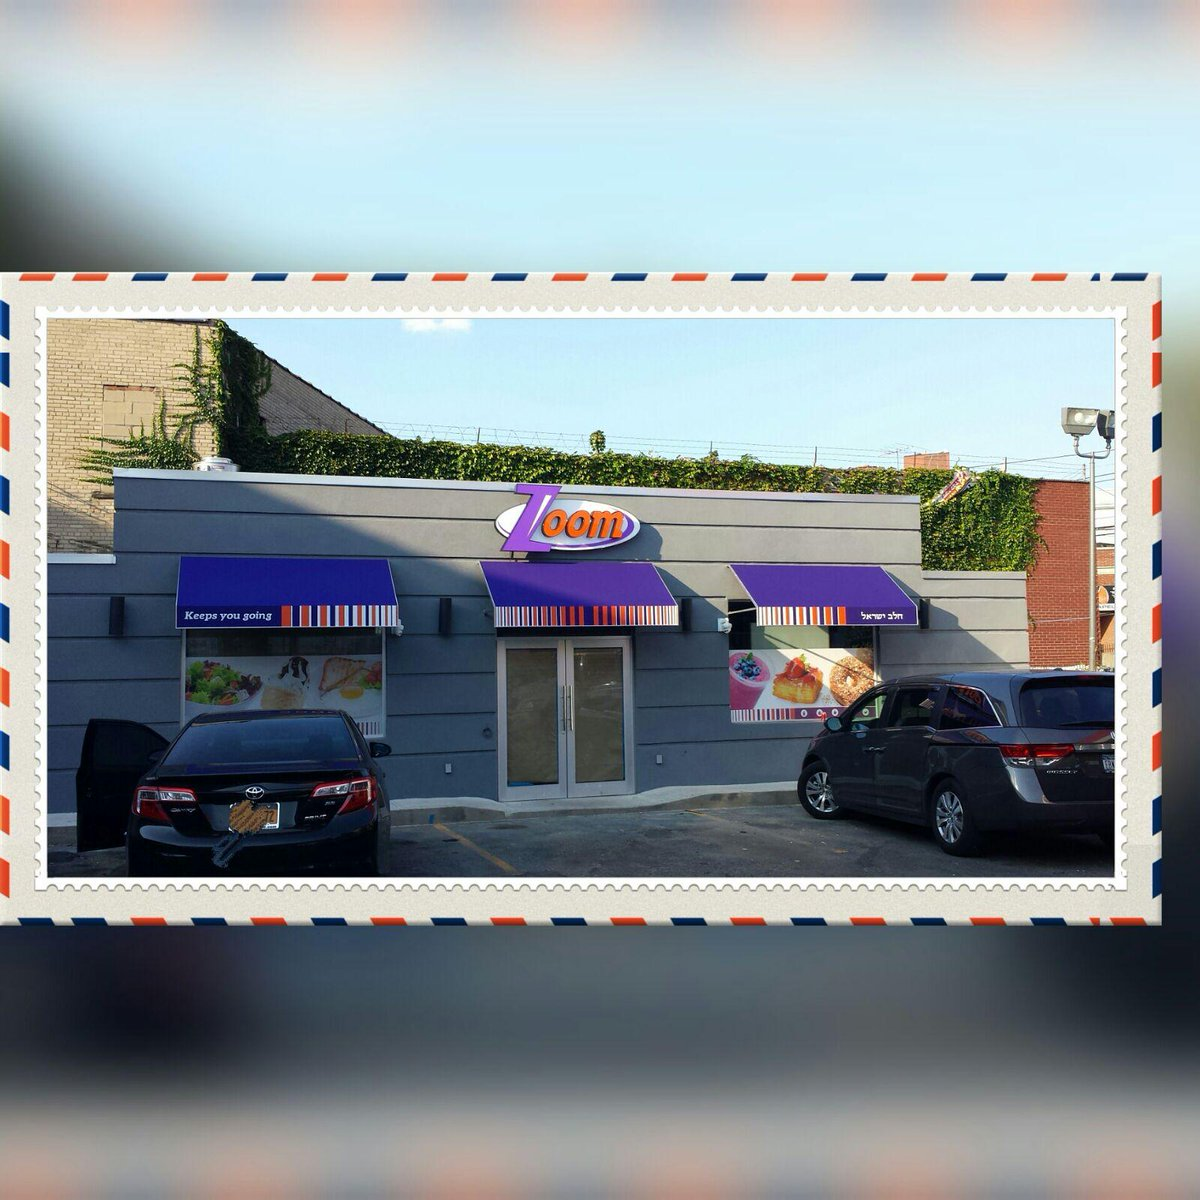 "Opening the doors this week Tuesday iy""h, 4302 fort Hamilton Pkwy. (Between 44-43rd st. By ExxonMobil gas station) http://t.co/vHs5I89TSn"